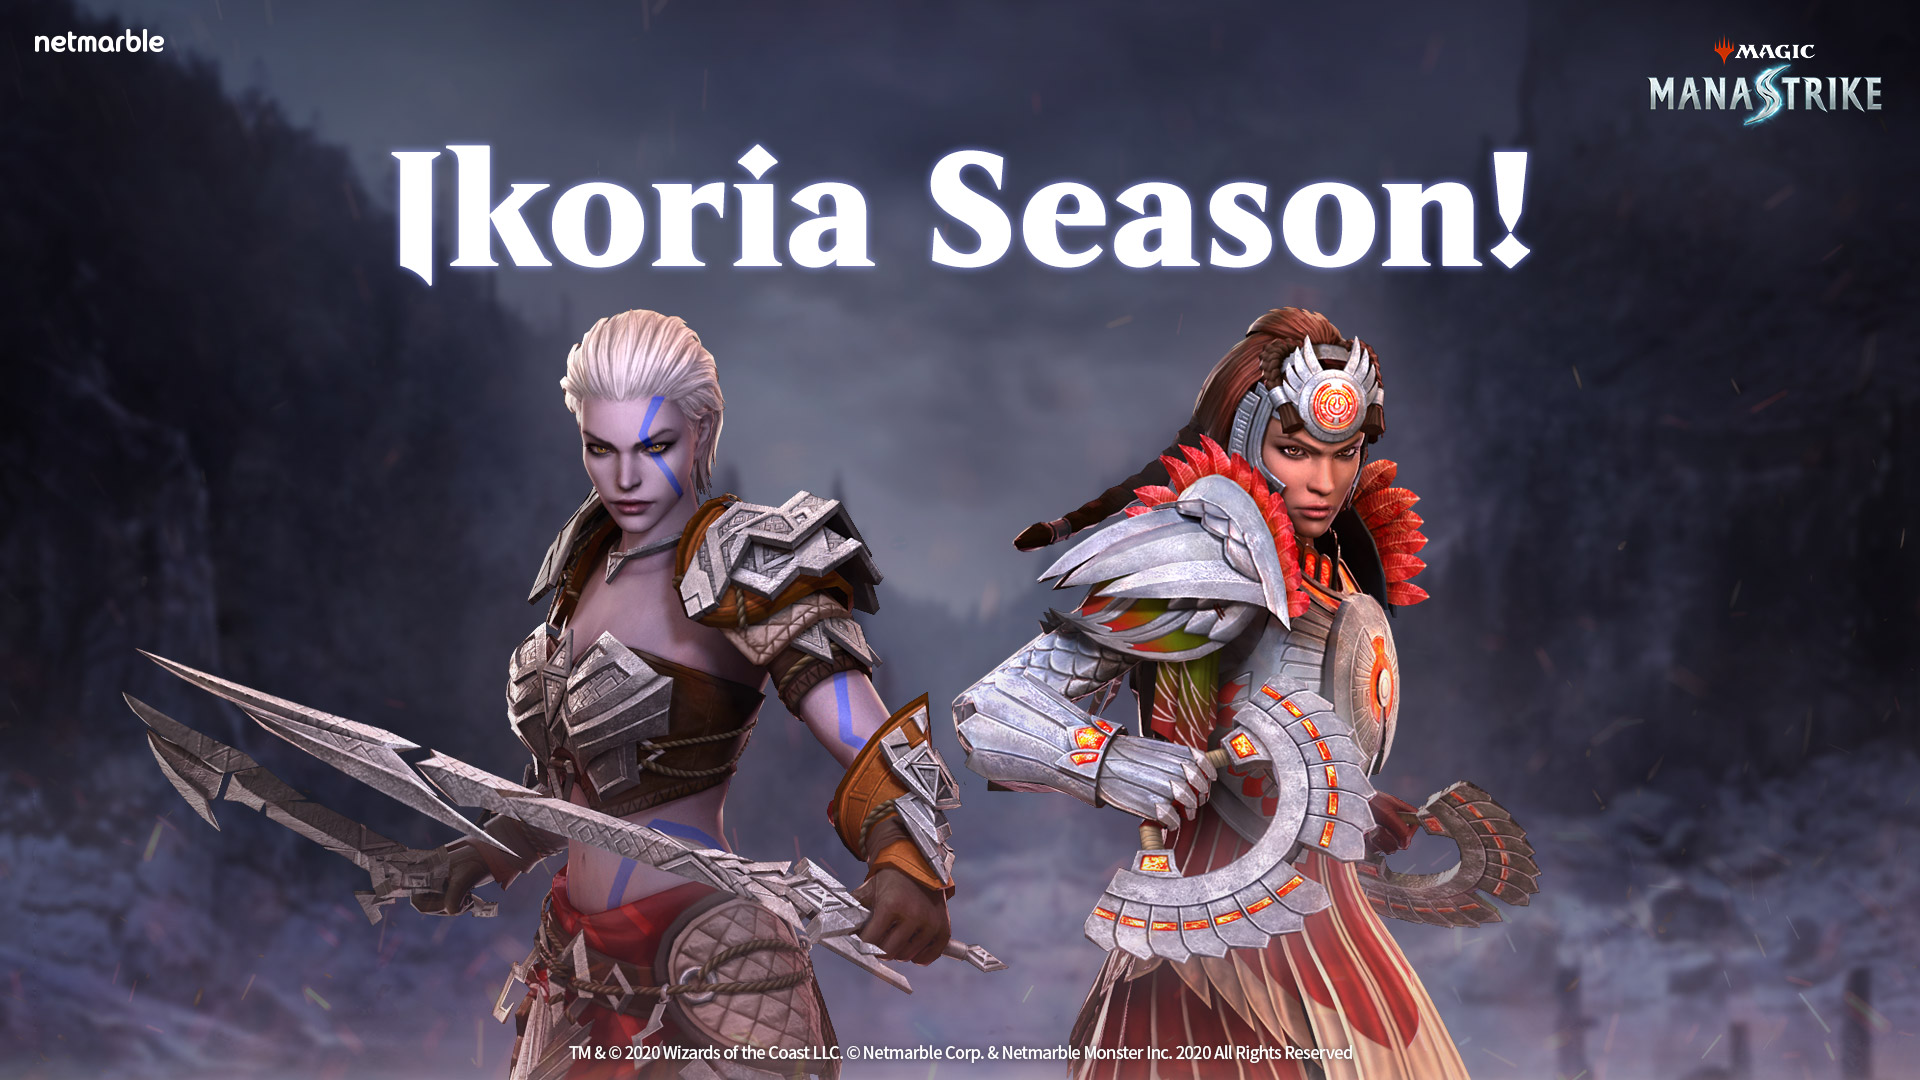 MAGIC: MANASTRIKE SUMMONS NEW PLANESWALKER AND SEASON 7 OF MAGIC PASS IN IKORIA SEASON UPDATE